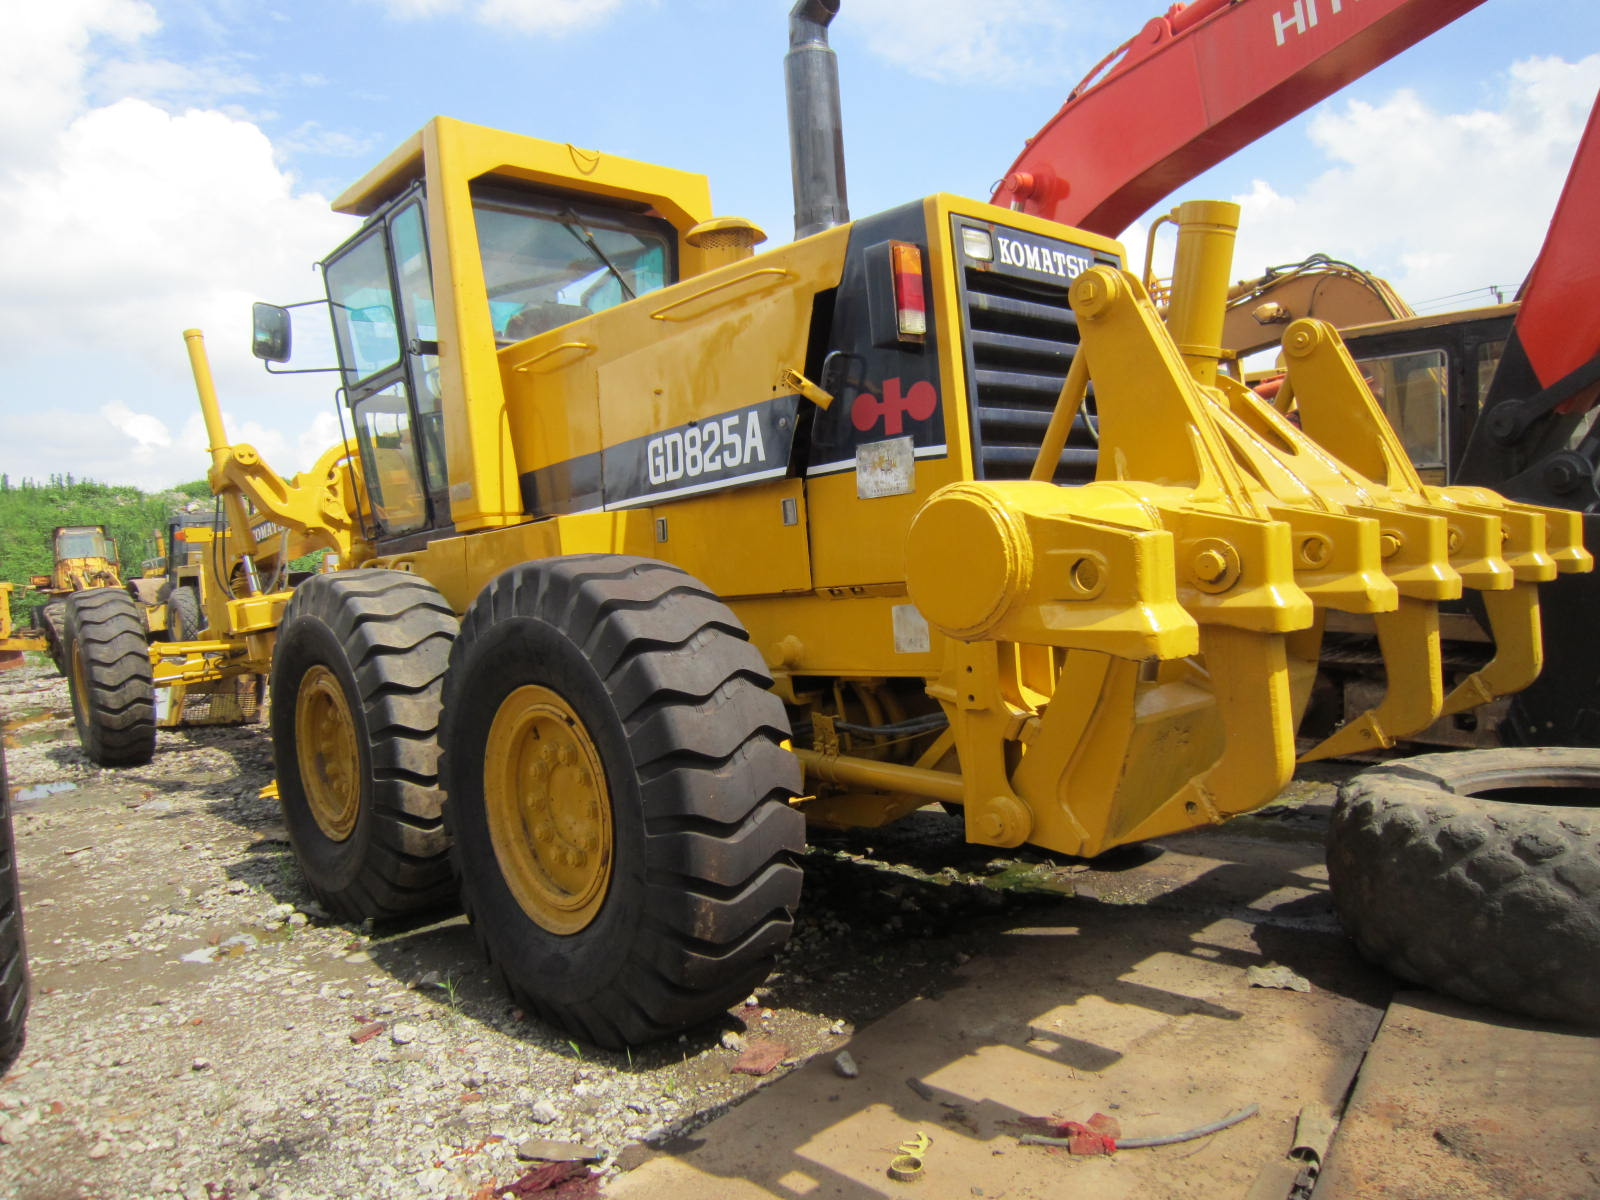 Used Original Komatsu GD825 Motor Grader In Cheap Price Sale GOOD QUALITY